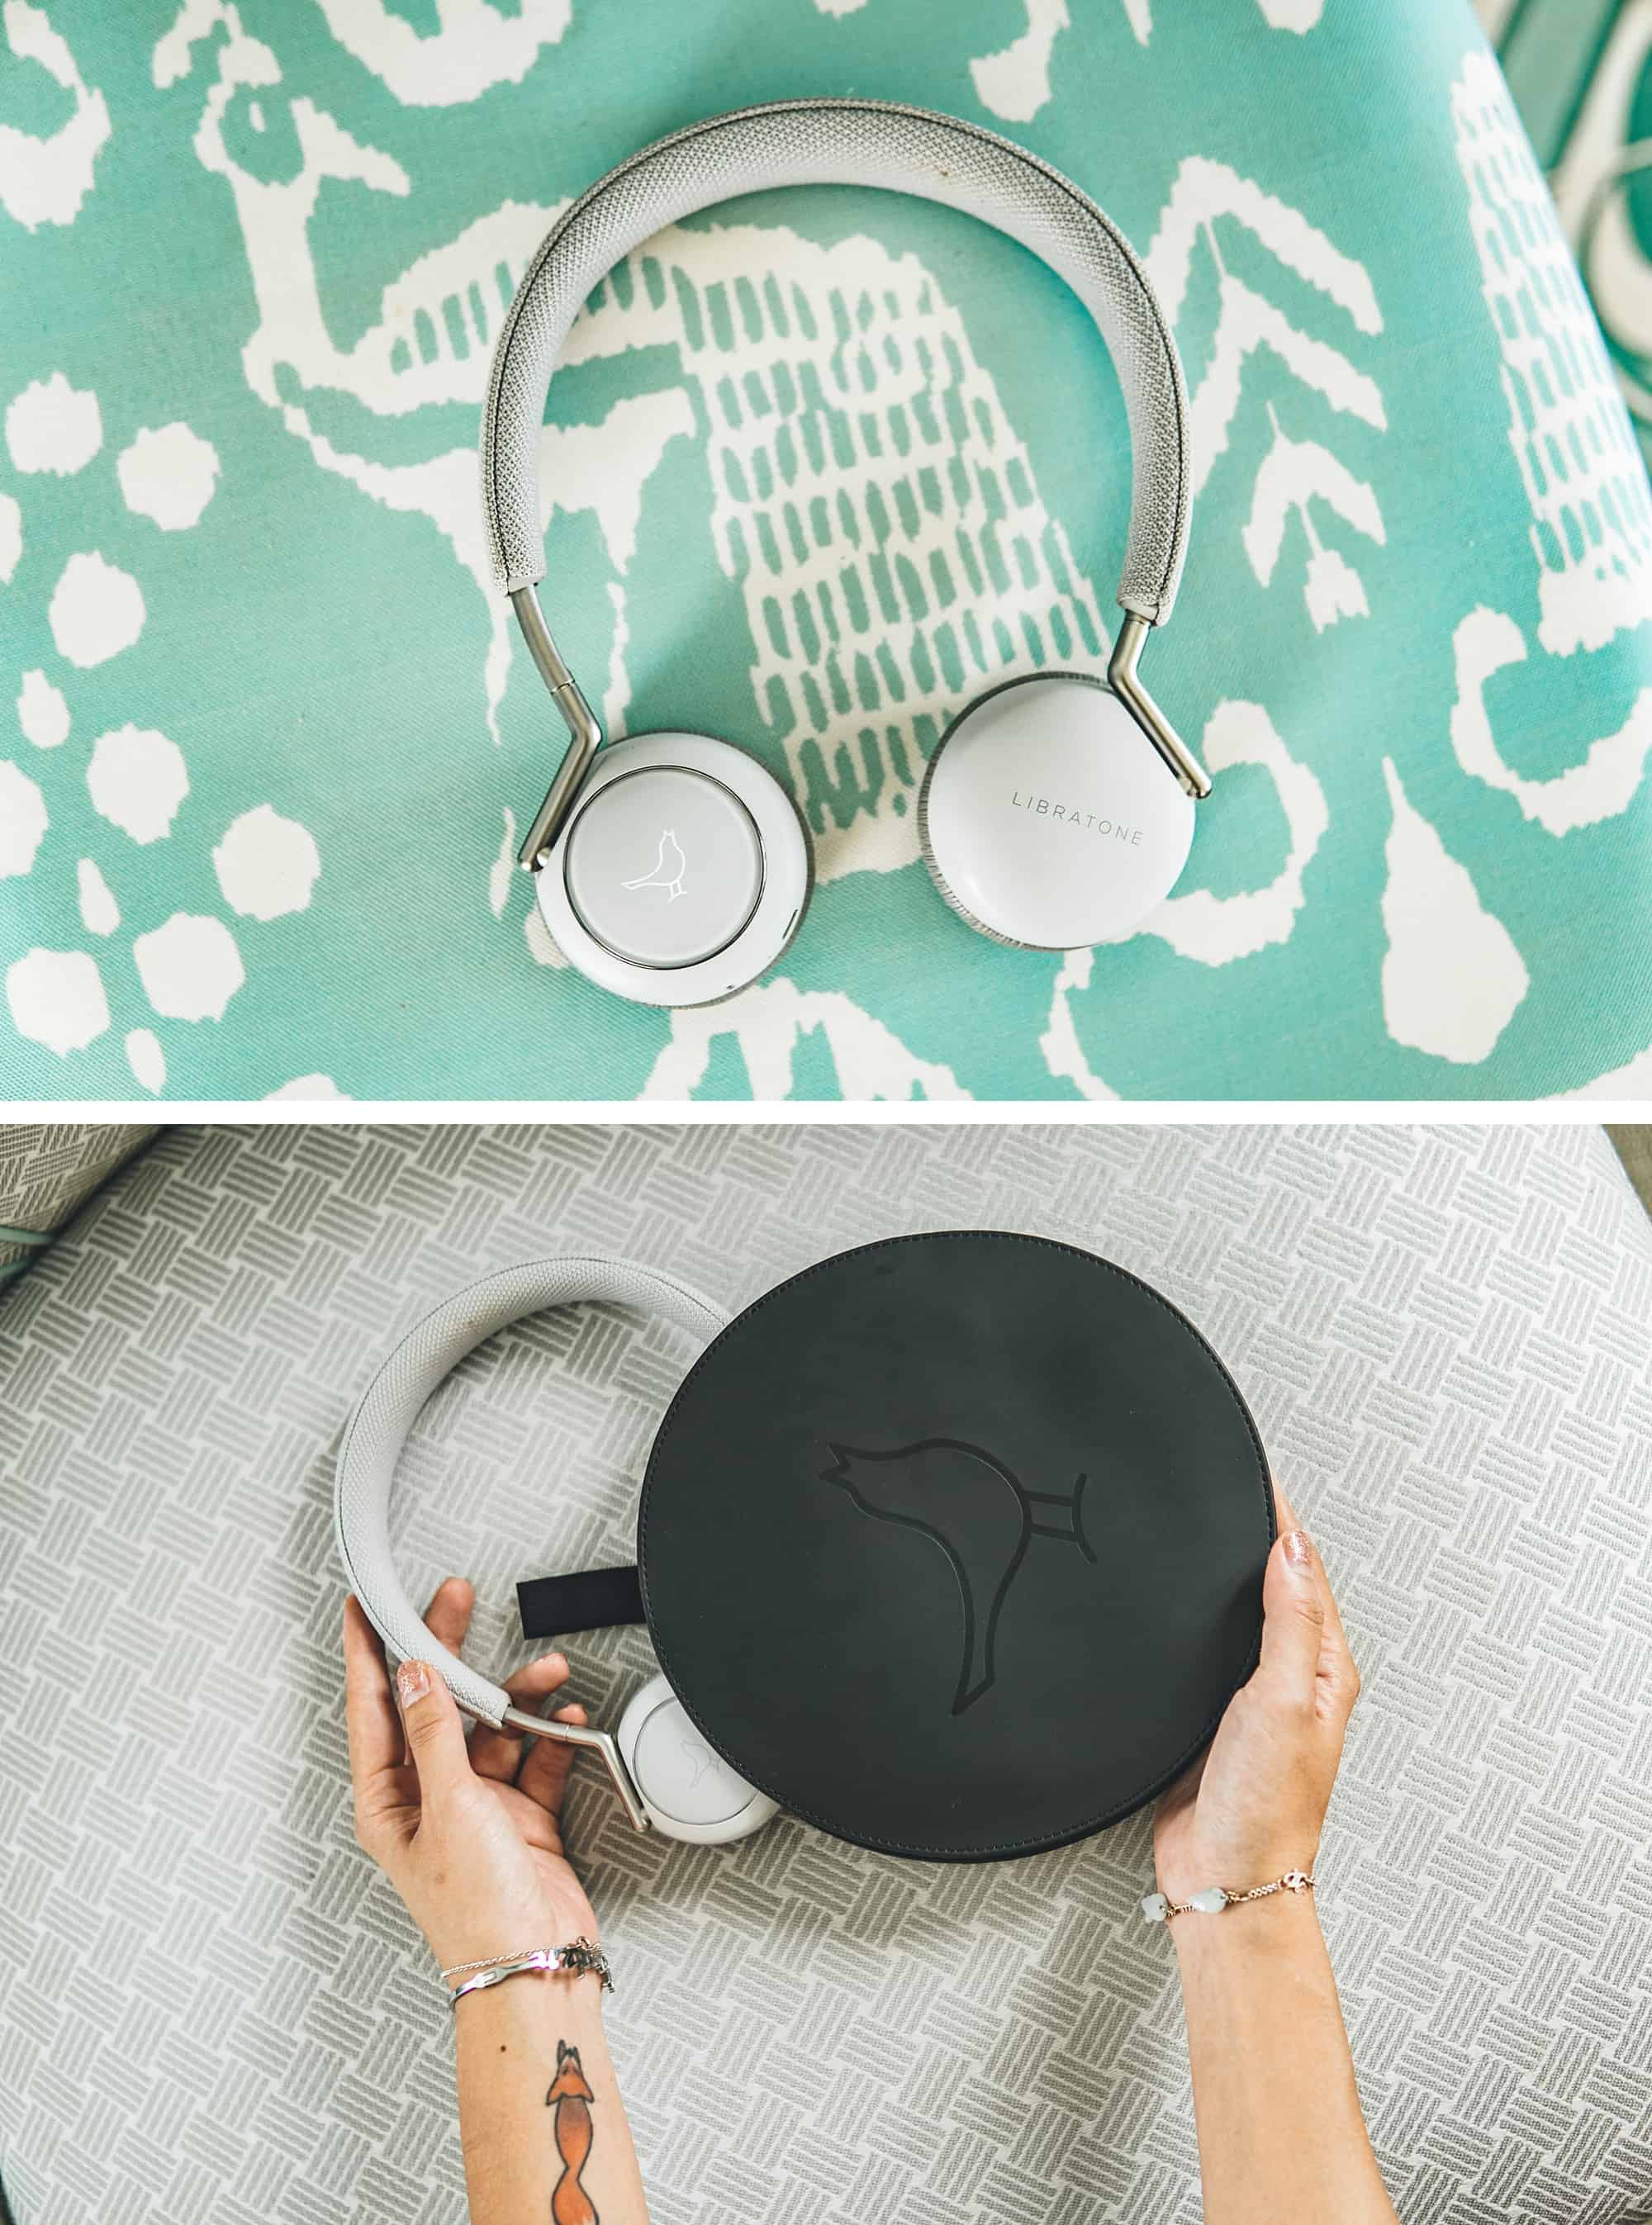 libratone headphones